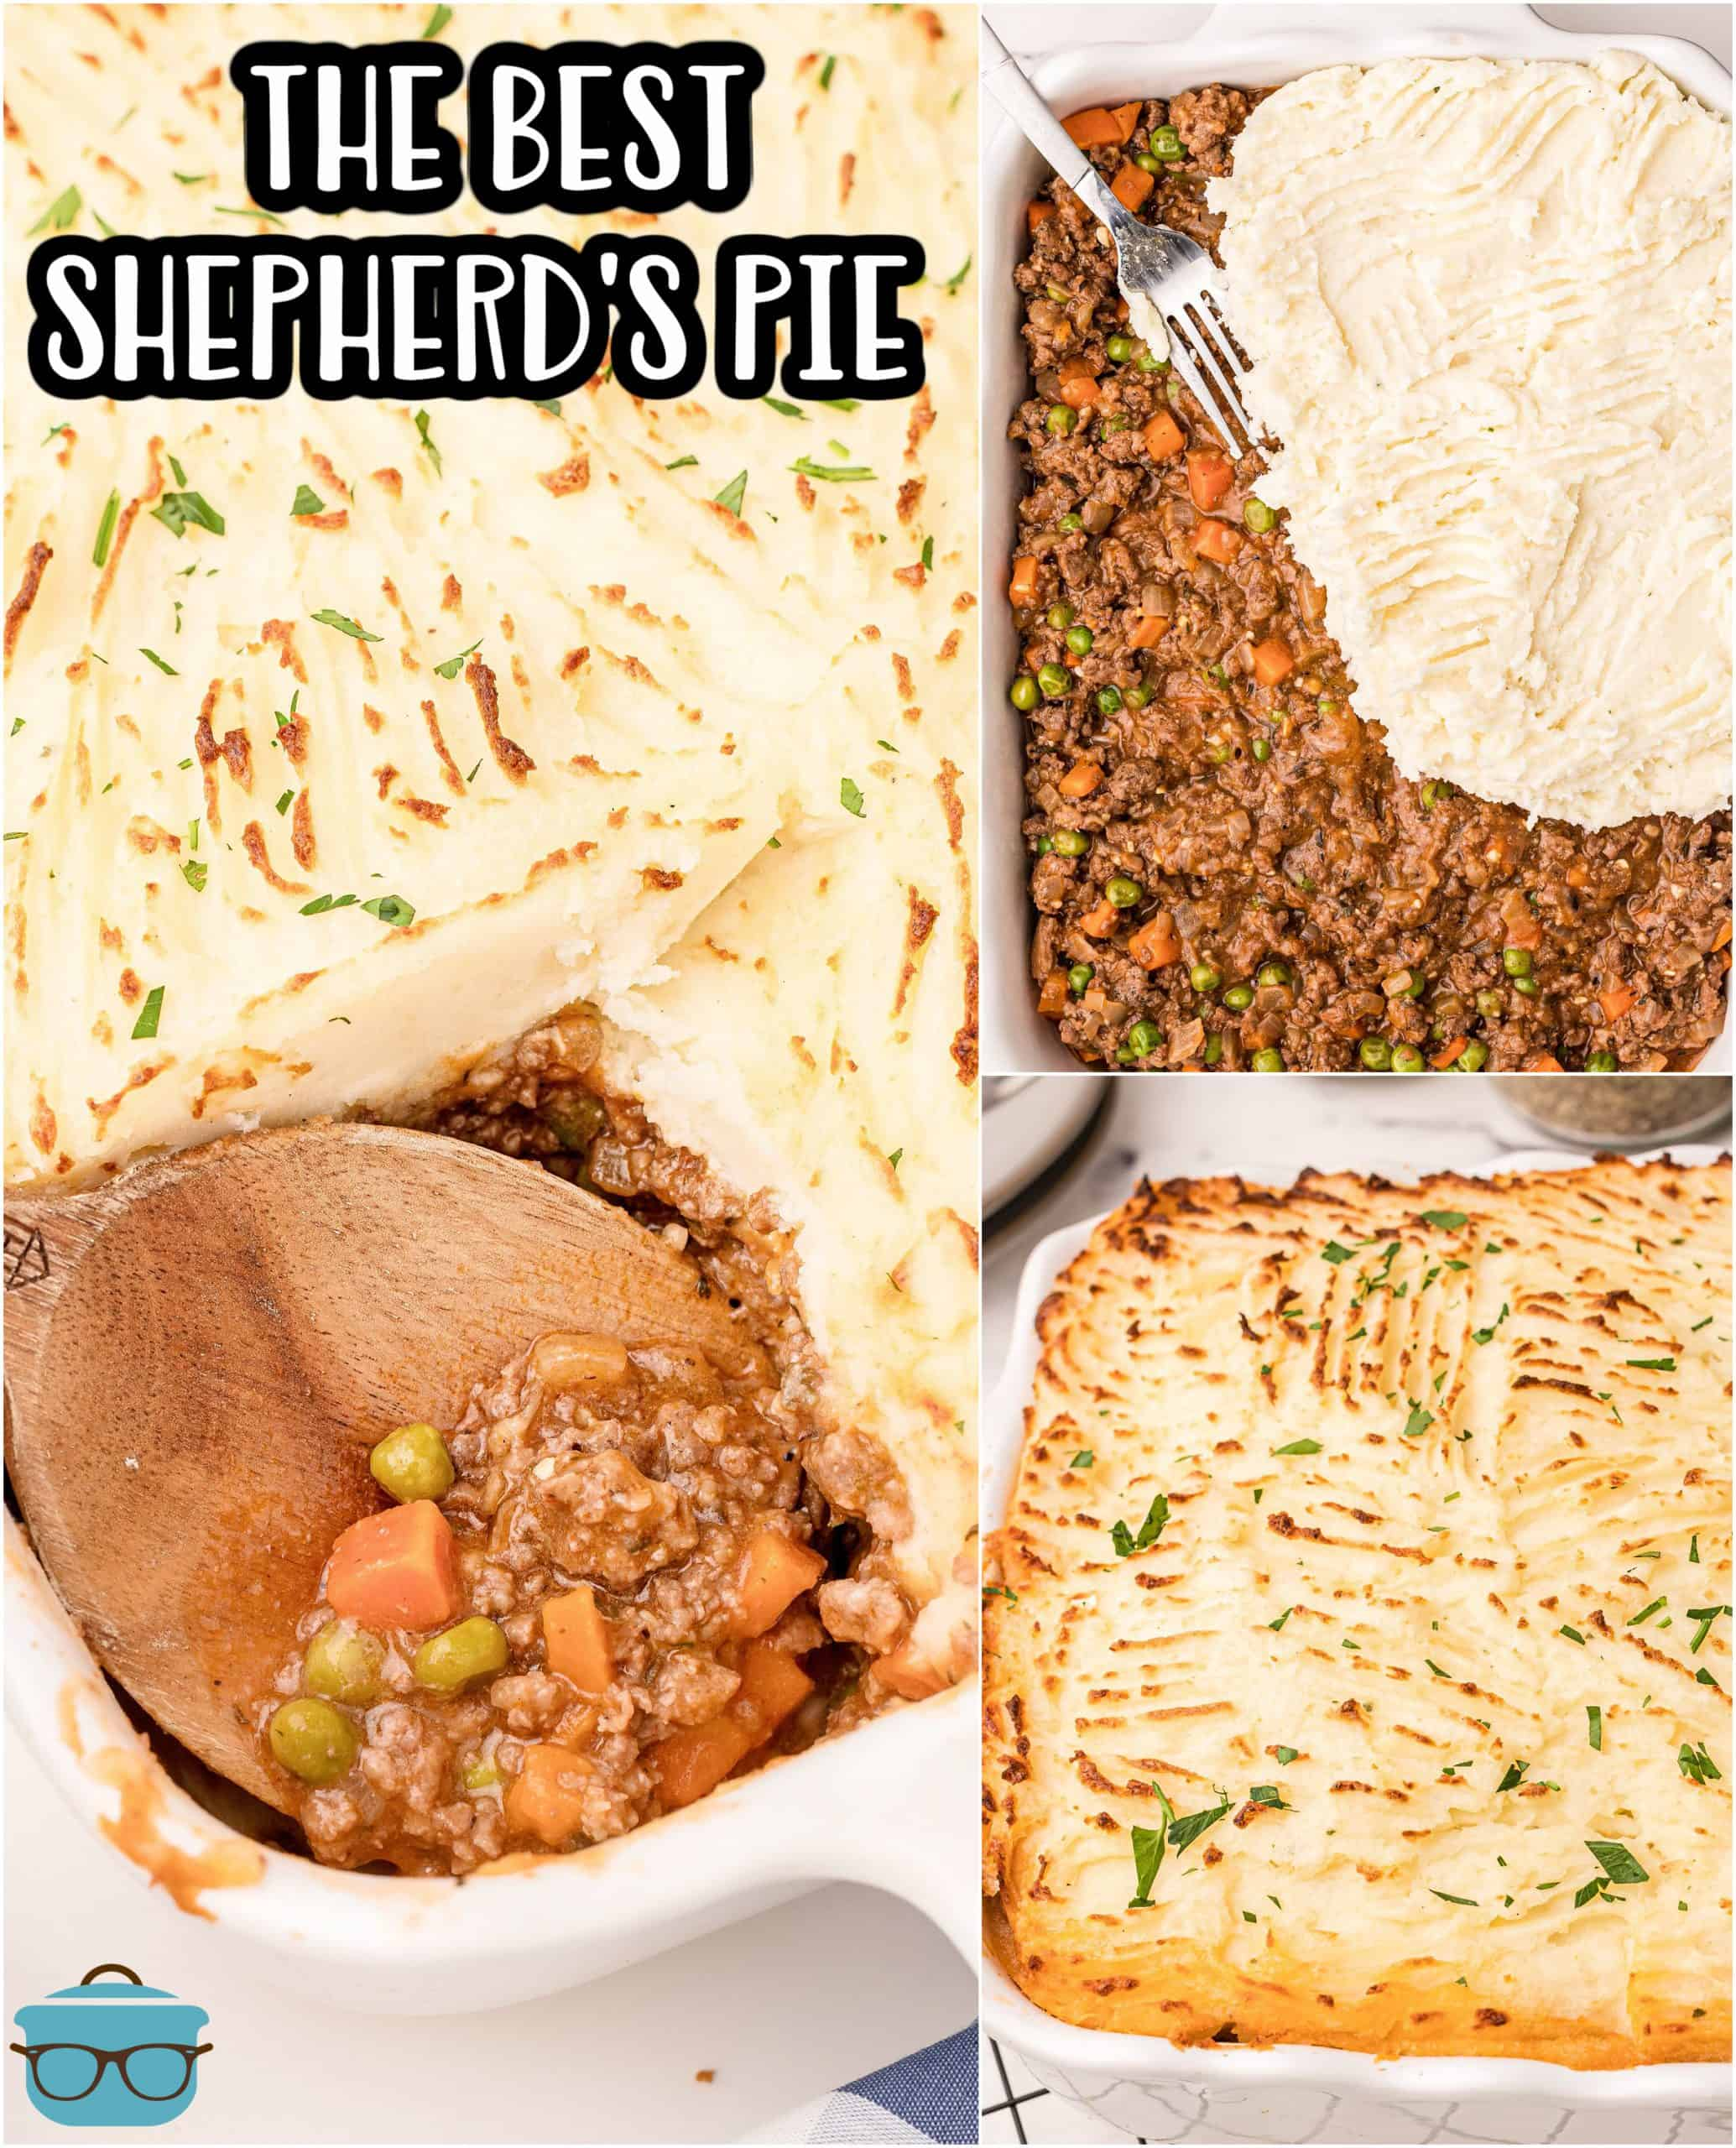 The Best Shepherd's Pie recipe from The Country Cook